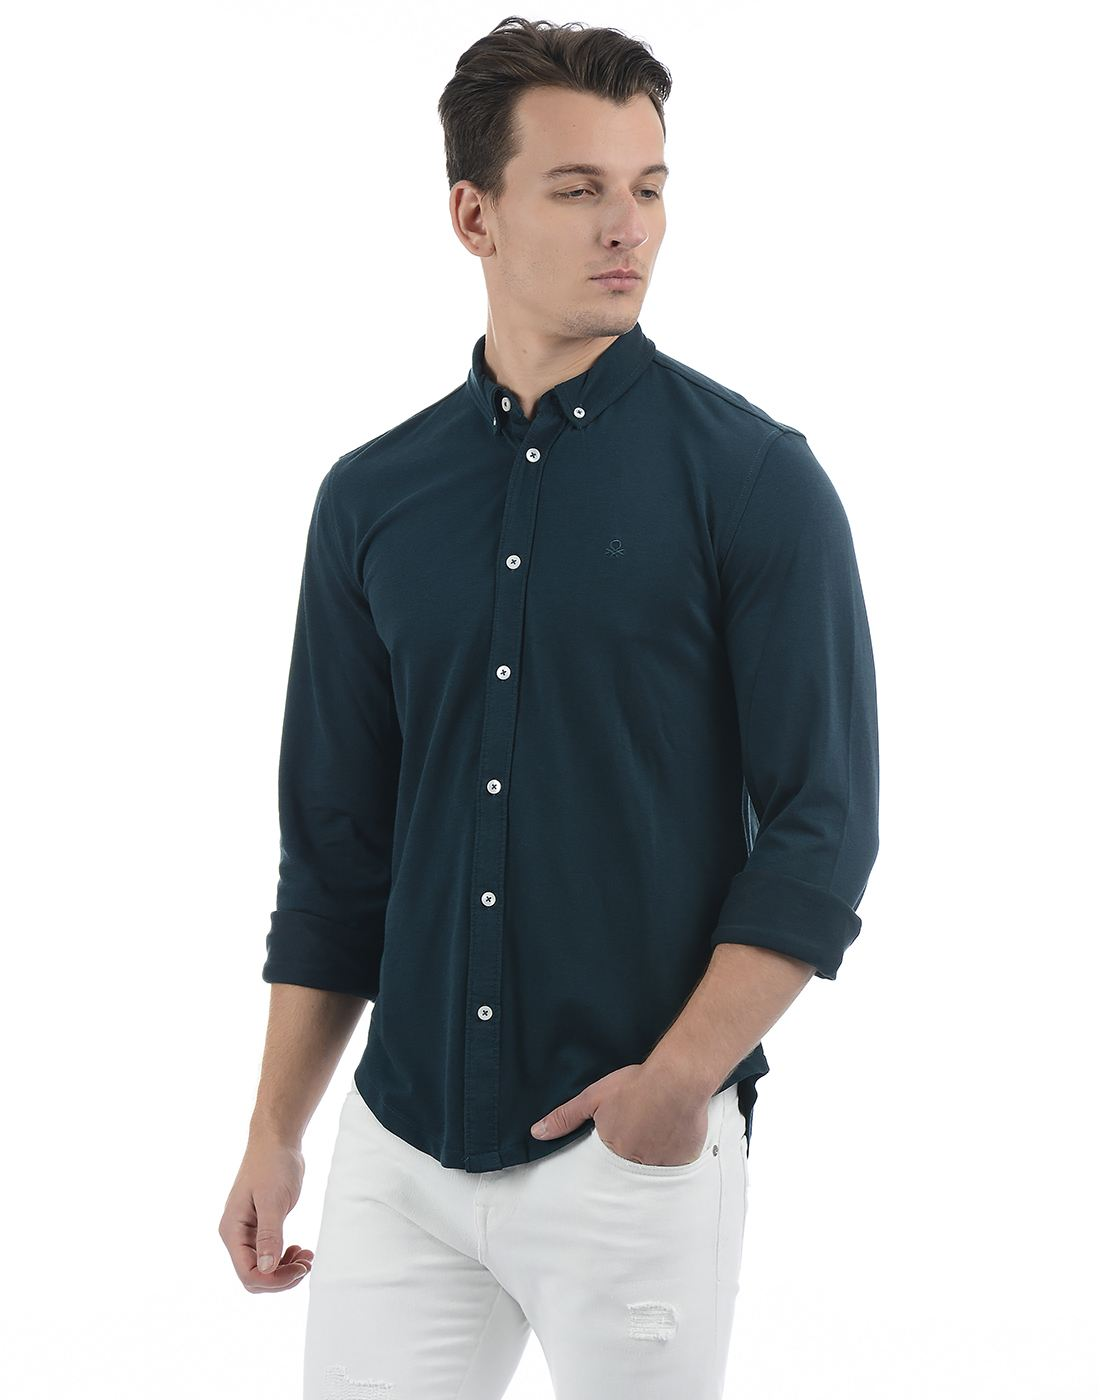 United Colors of Benetton Men's Green Solid Shirt